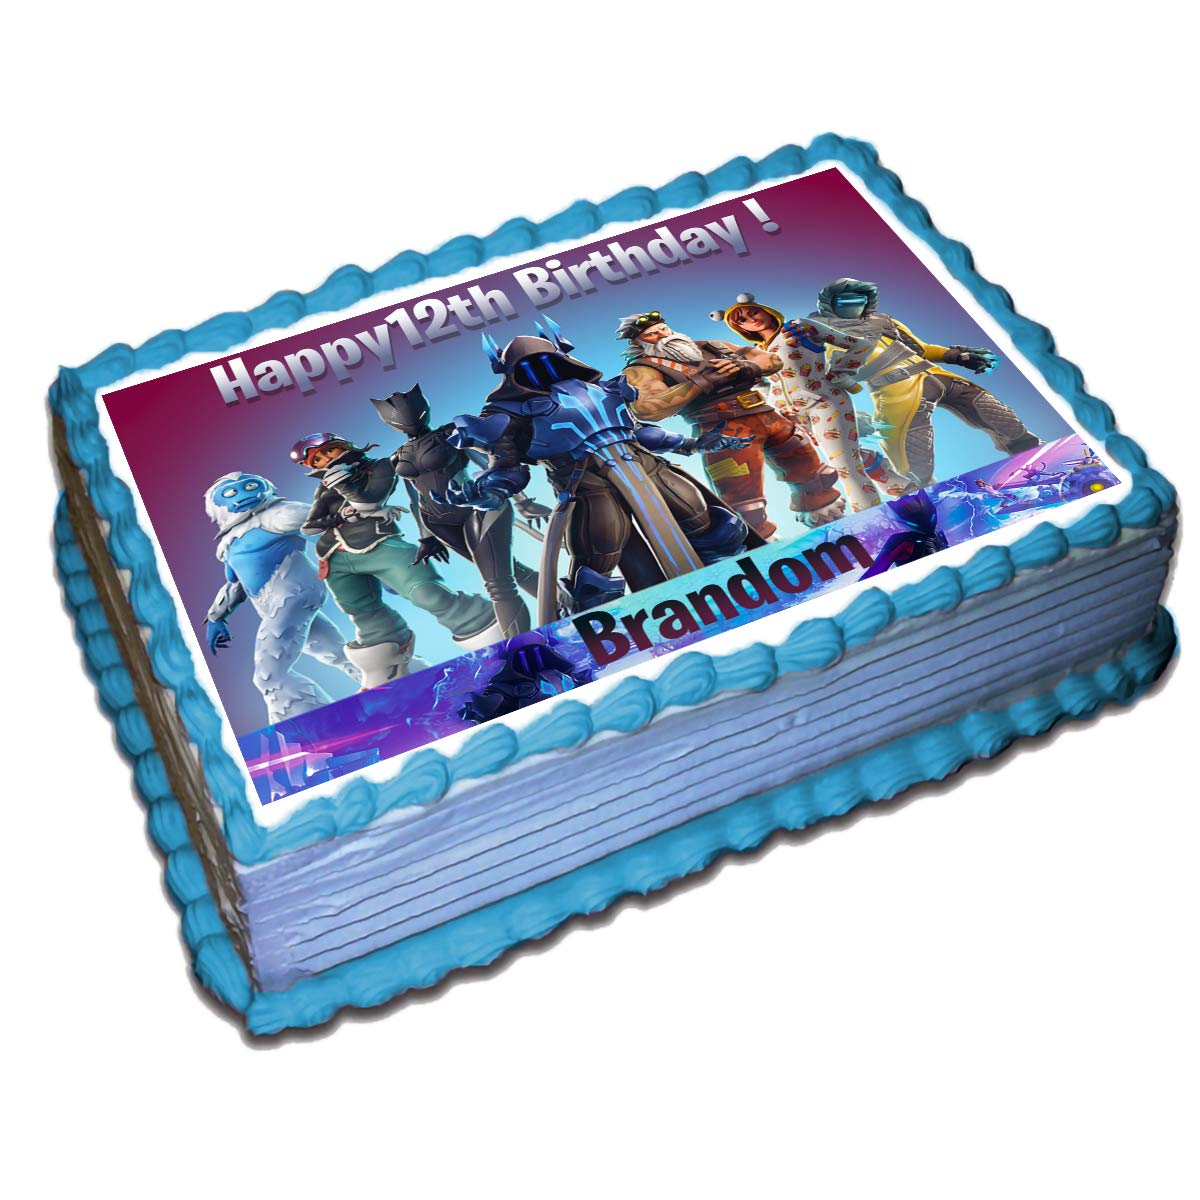 Fortnite (7 Season) Personalized Cake Toppers Icing Sugar Paper 8.5 x 11.5 Inches Sheet Edible Frosting Photo Birthday Cake Topper Fondant Transfer (Best Quality Printing)